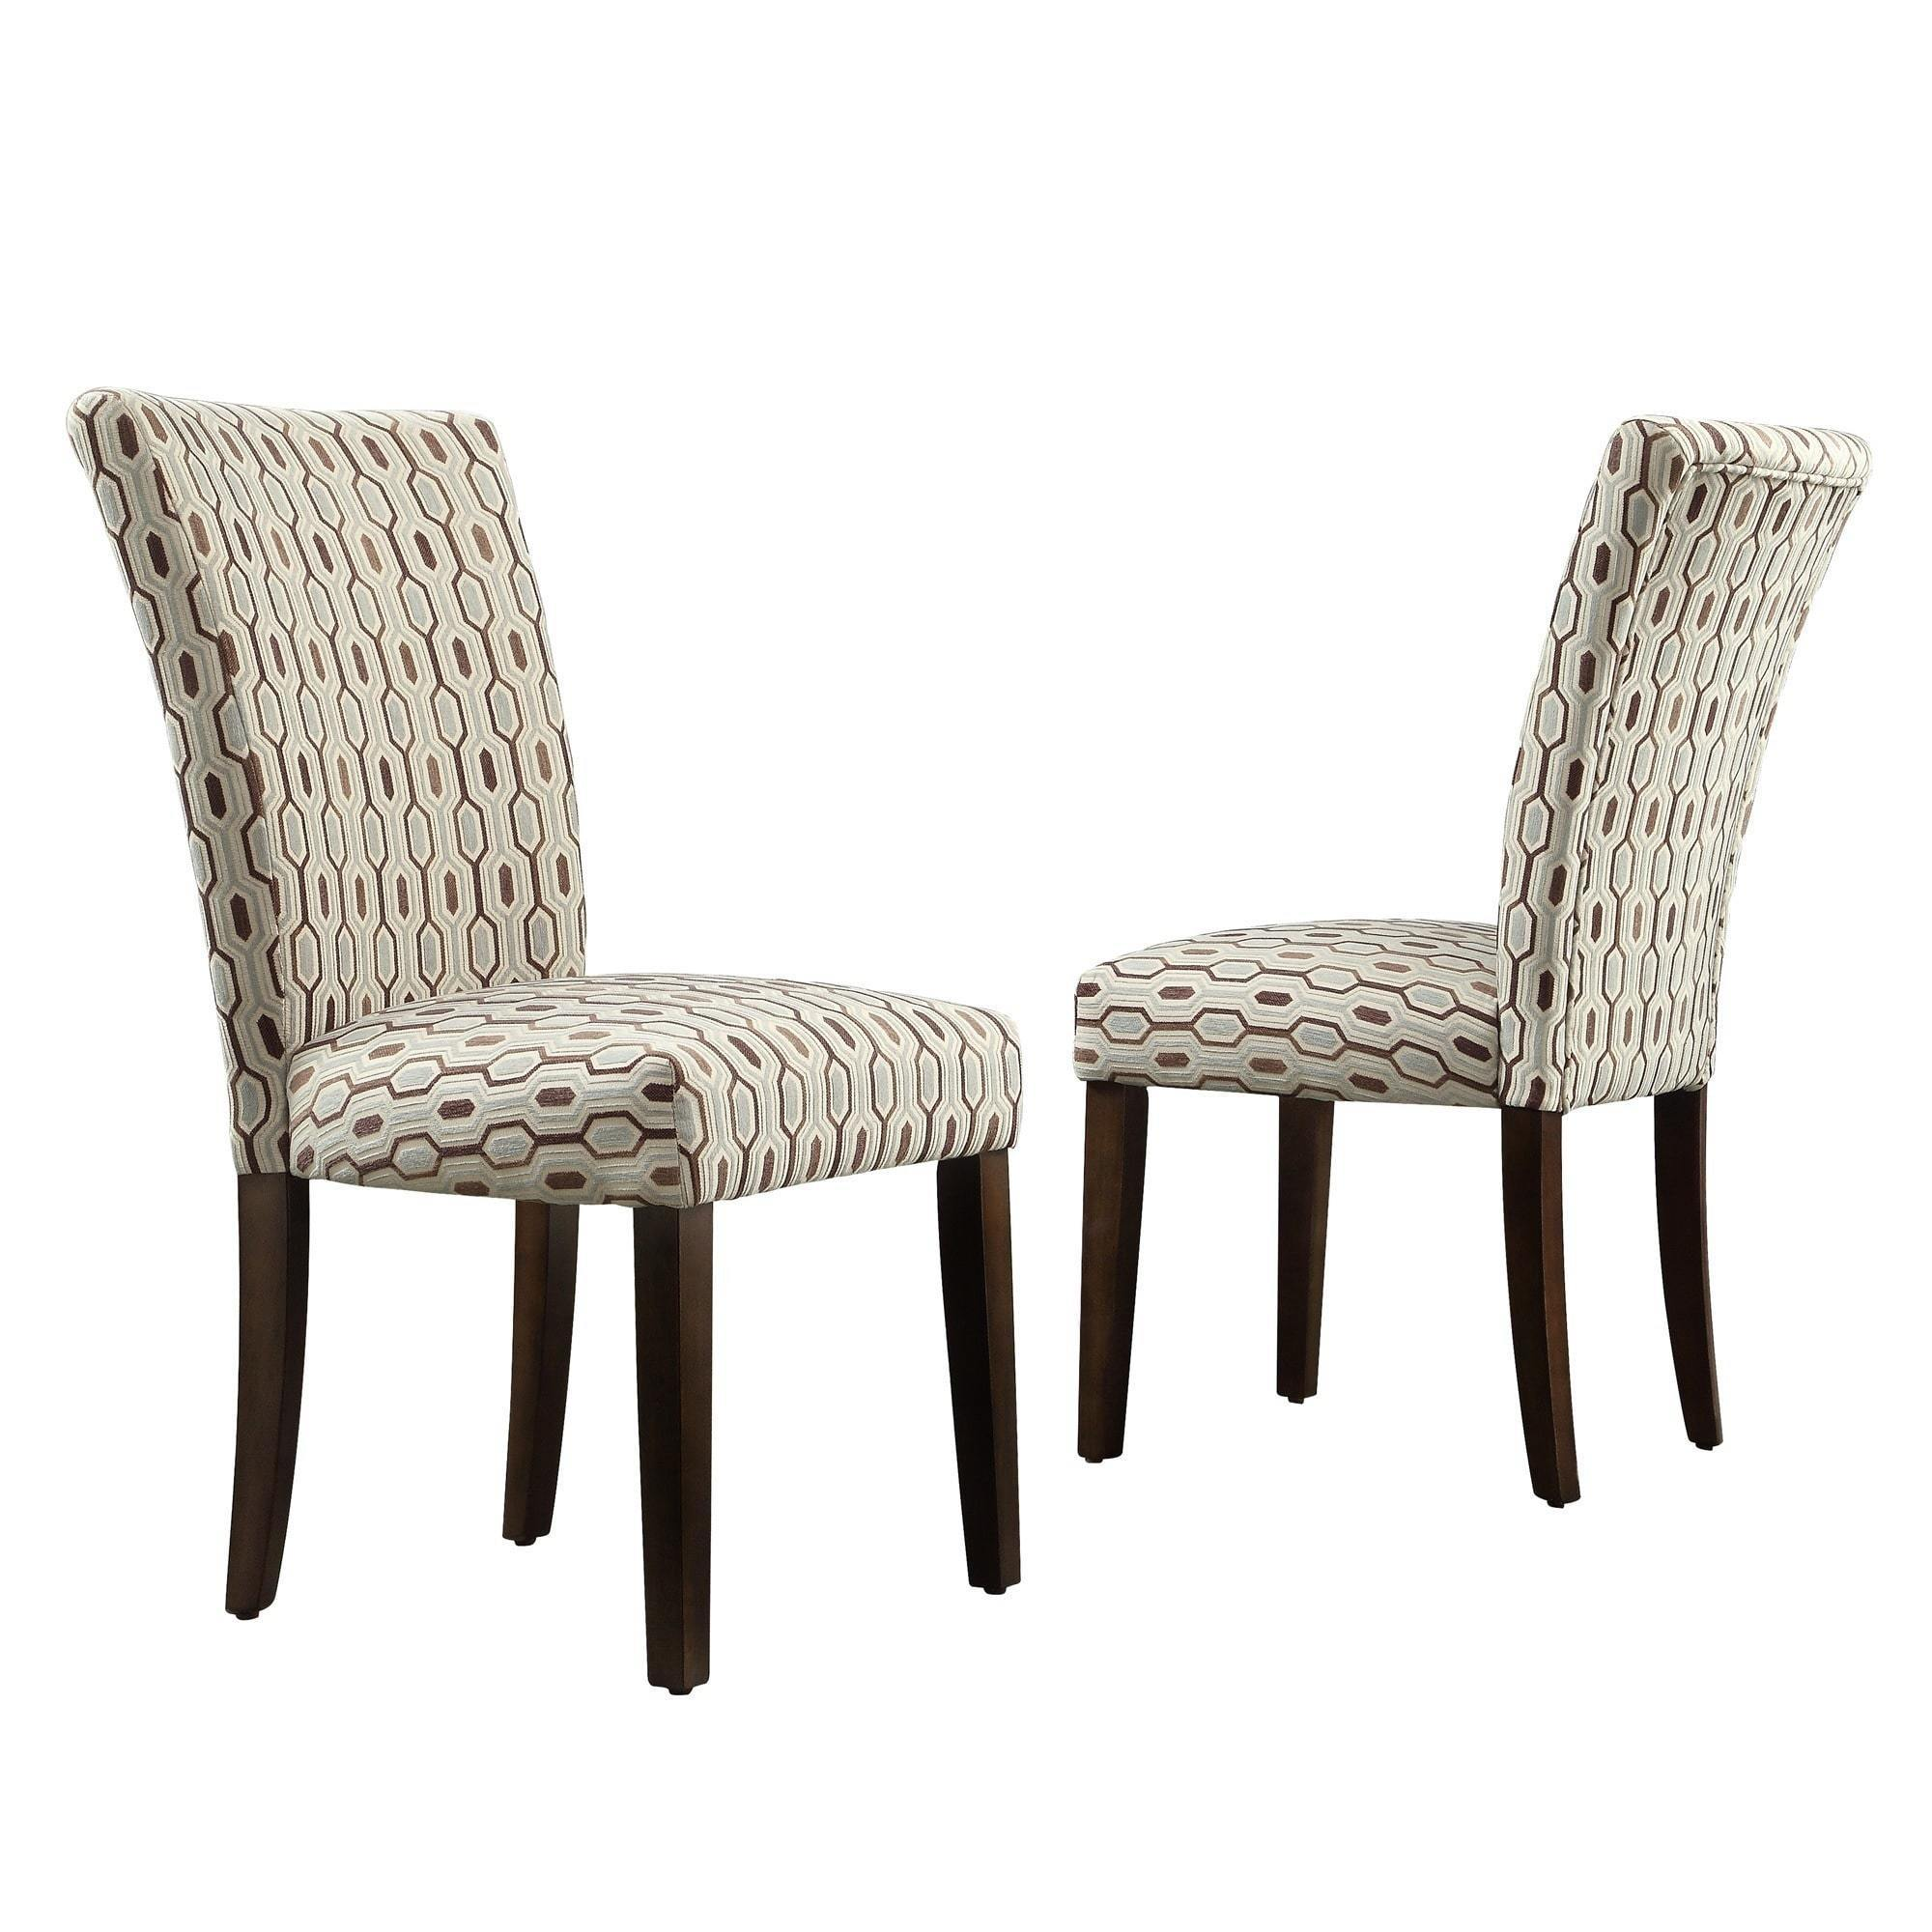 Catherine Print Parsons Dining Side Chair (Set of 2) by iNSPIRE Q Bold -  Free Shipping Today - Overstock.com - 15829235